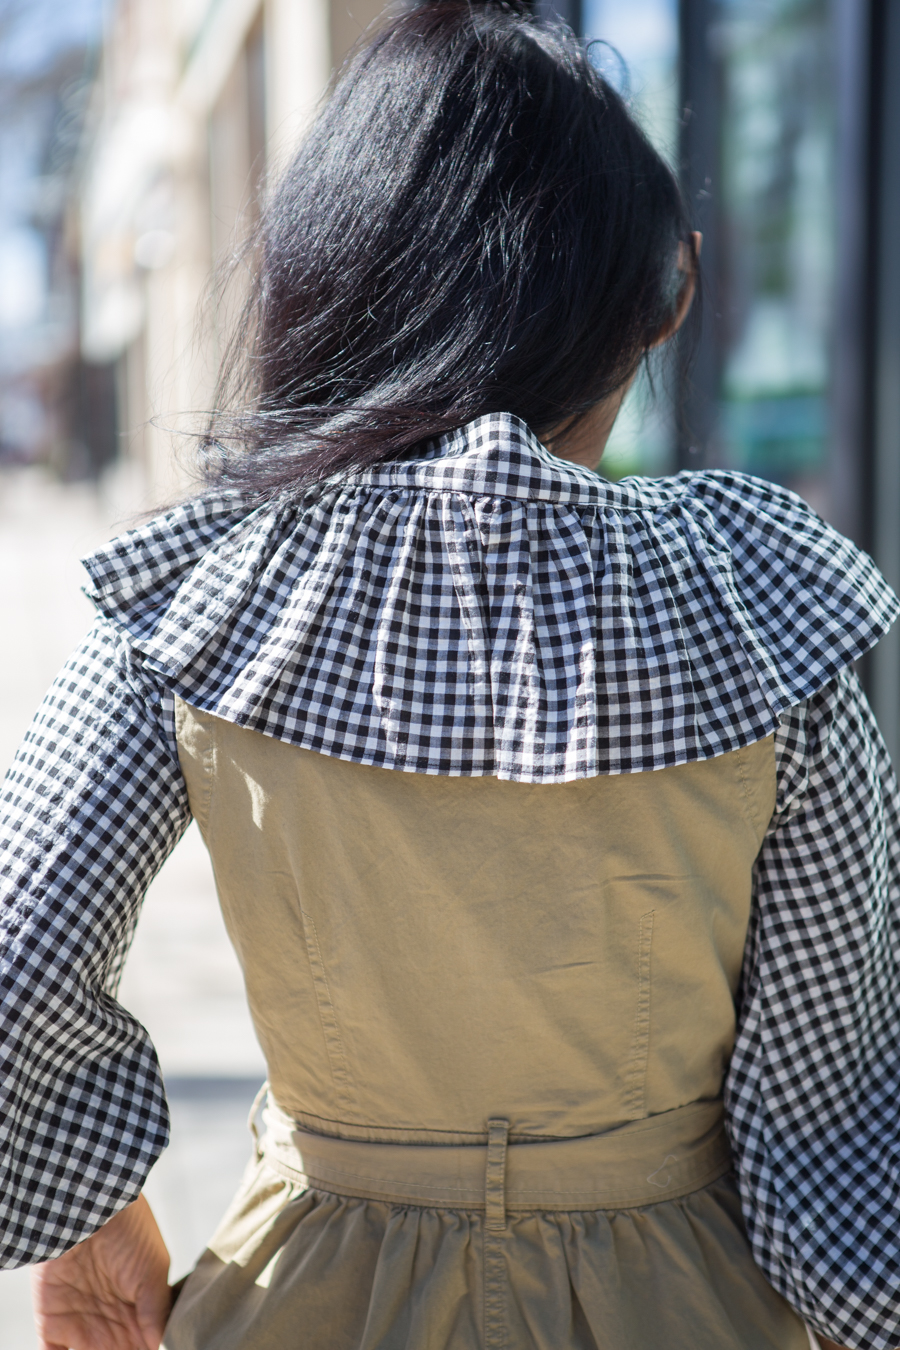 gingham, ruffles, trench dress, spring layers, topshop, zara, bell sleeves